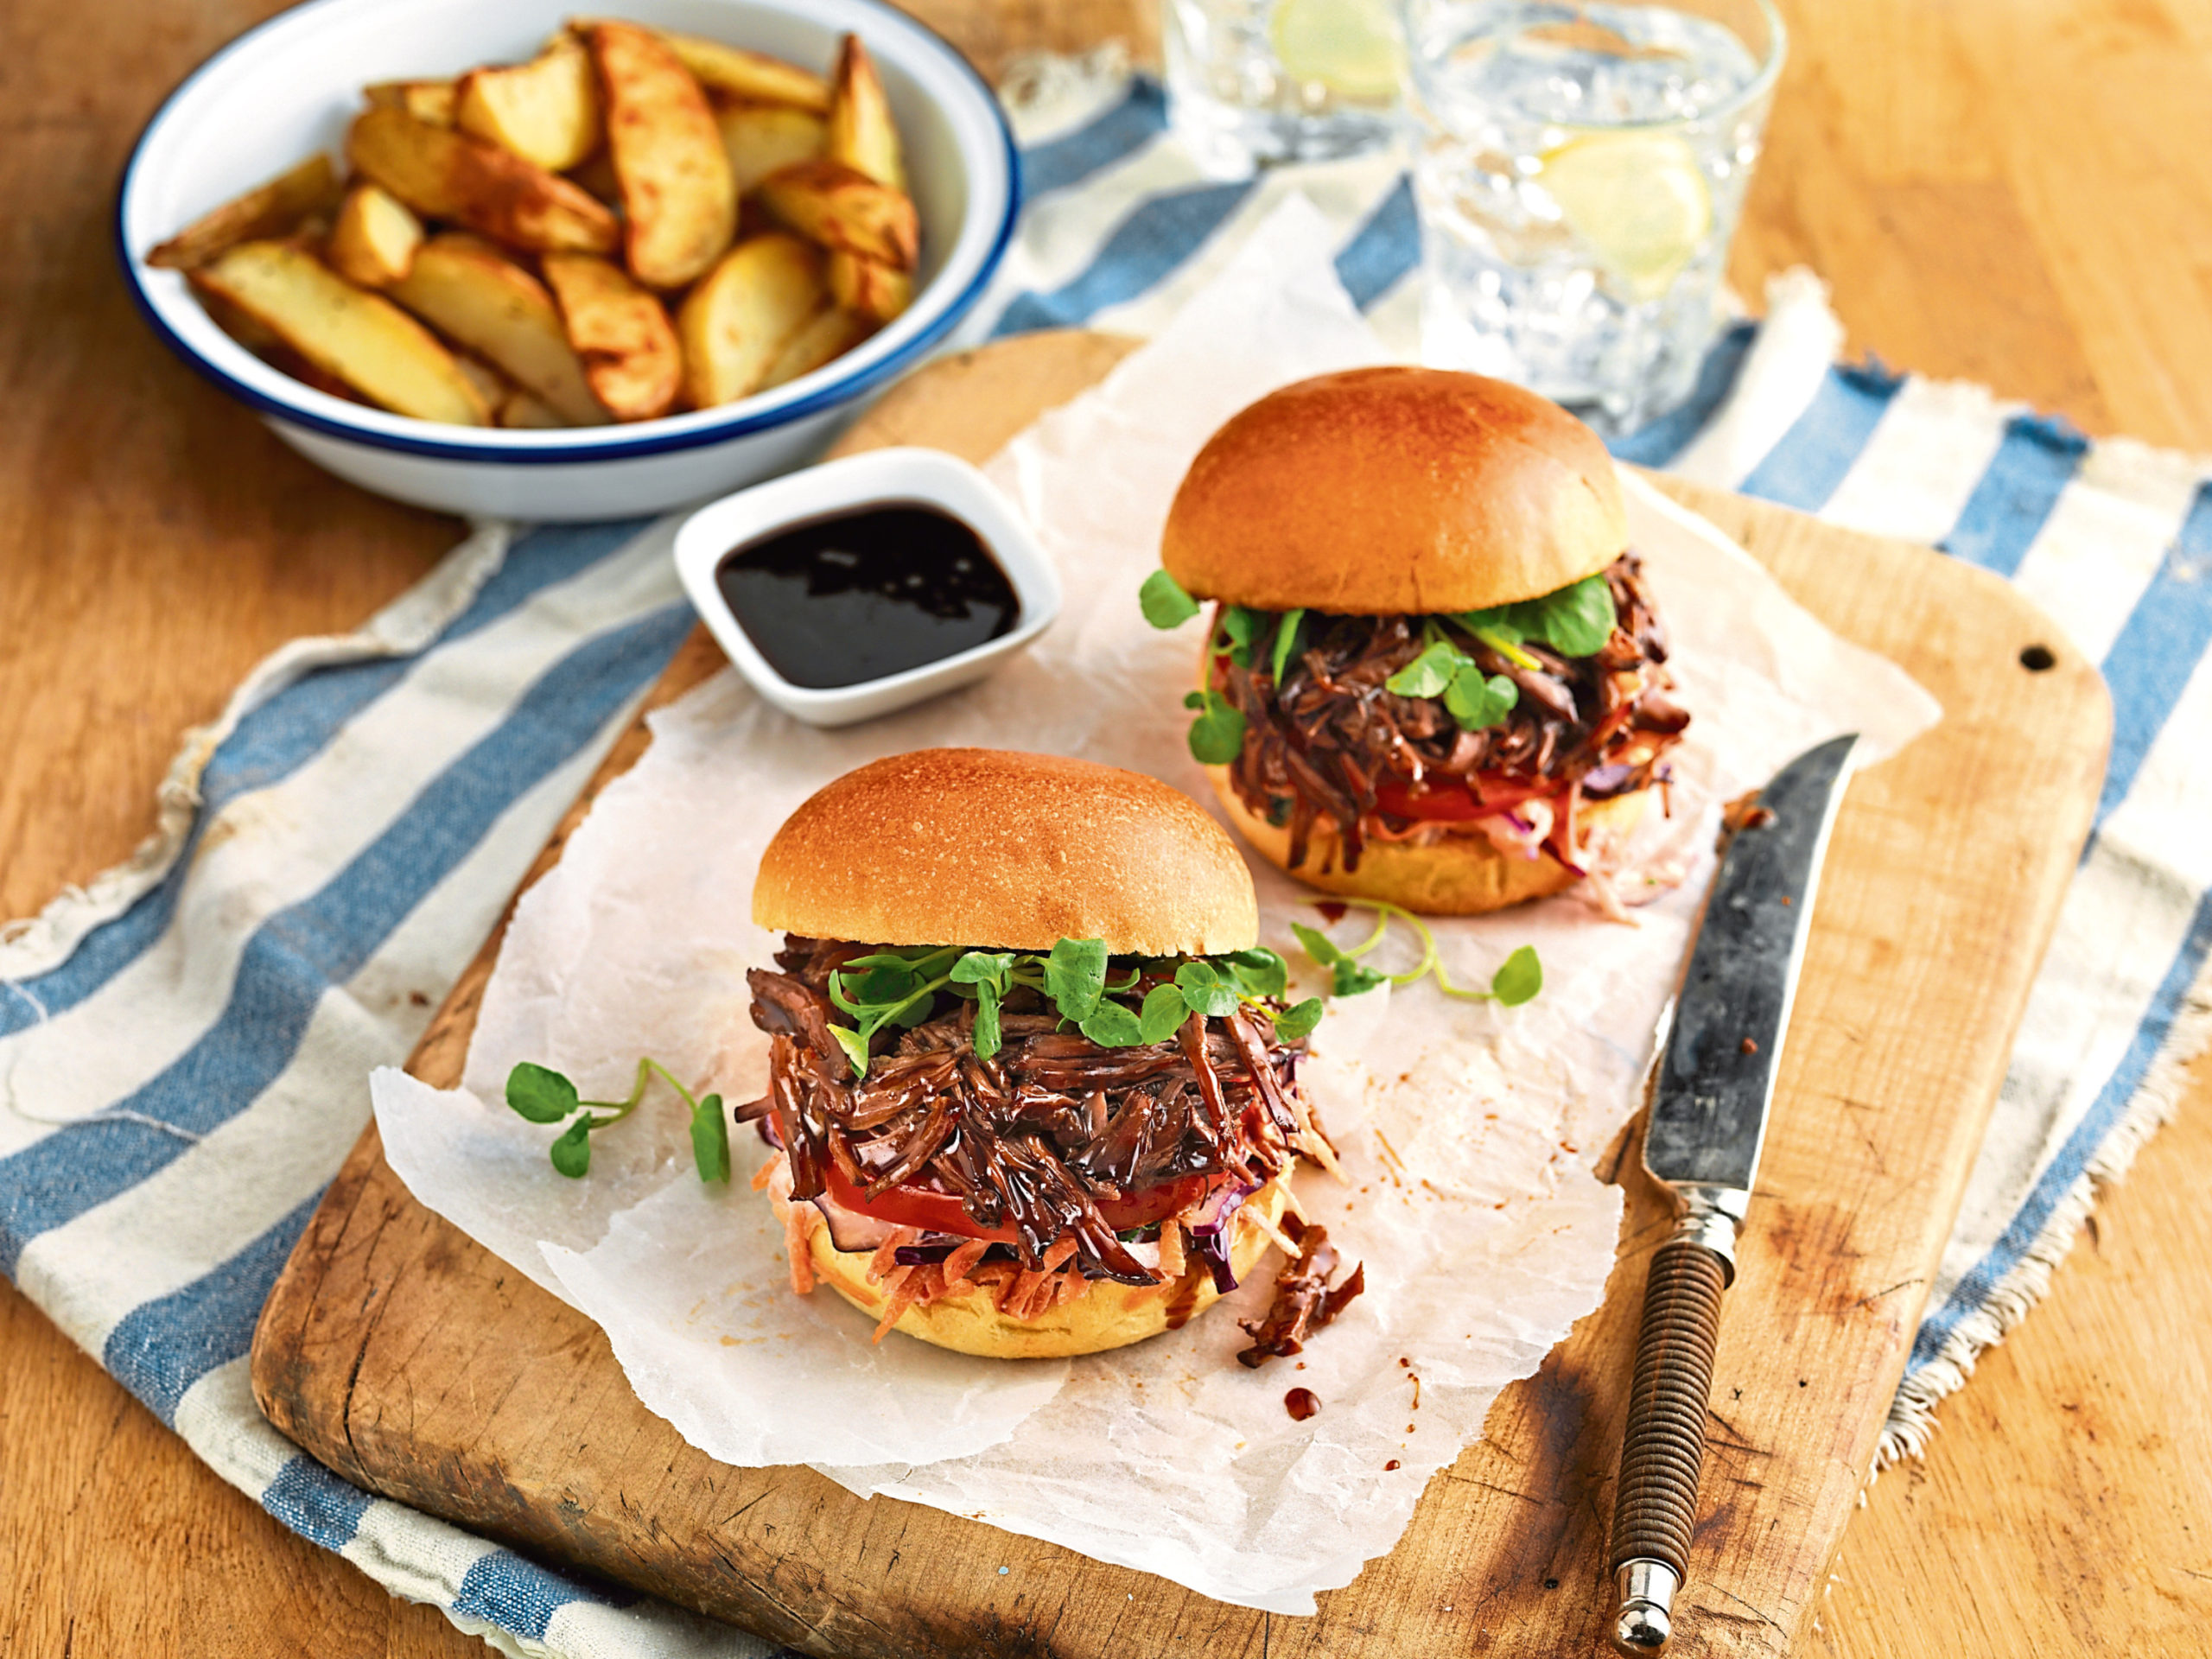 Meat products like burgers, mince and roasting joints are increasing in popularity.